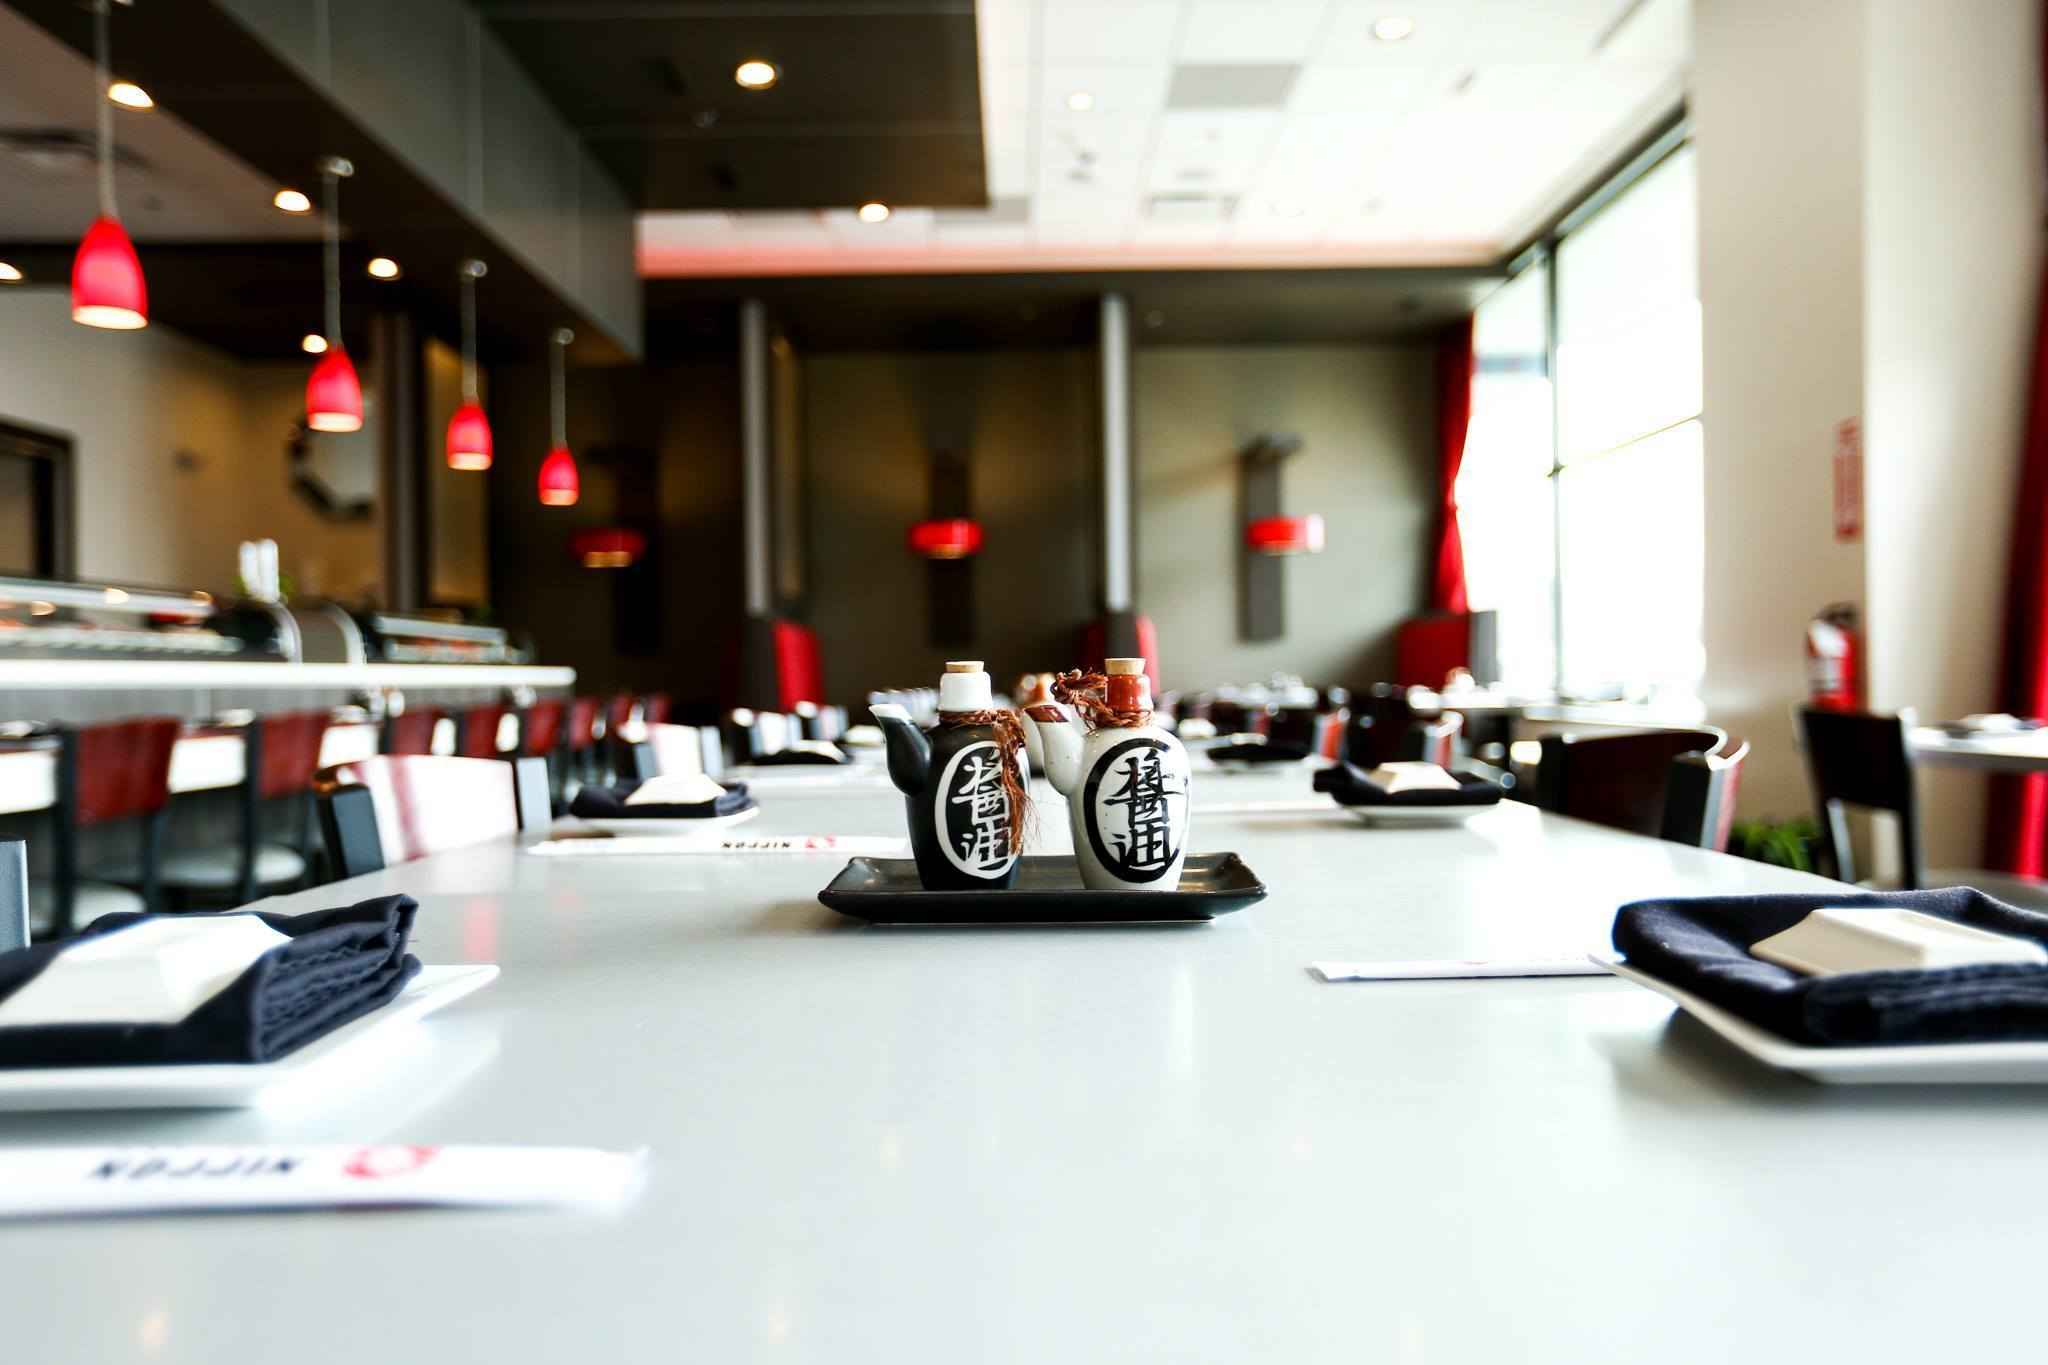 Nippon Sushi Bar - Southfield is open from 11am - 3pm and 5pm - 9pm on weekdays, 2pm -10pm on Saturdays, and closed on Sundays.